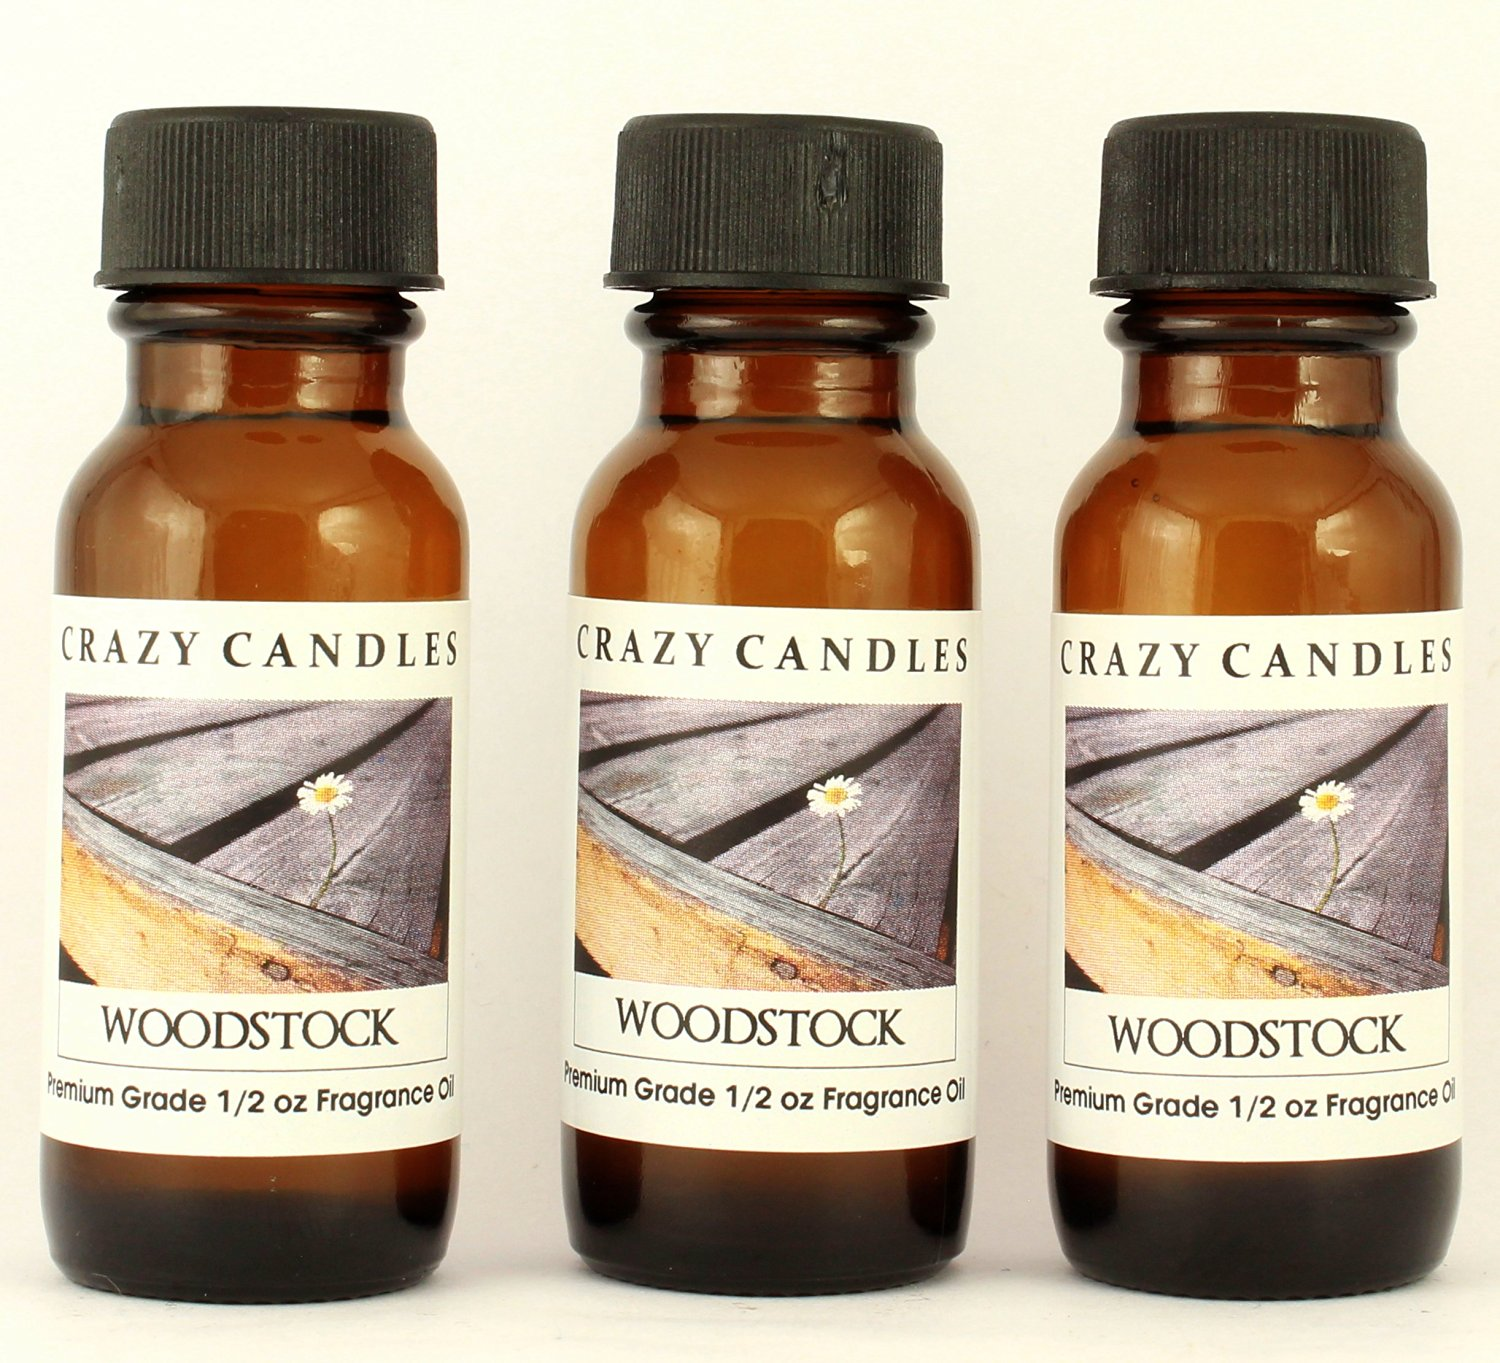 Woodstock 3 Bottles 1/2 Fl Oz Each (15ml) Premium Grade Scented Fragrance Oil By Crazy Candles (Patchouli, Sandalwood, Musk and Bergamot)